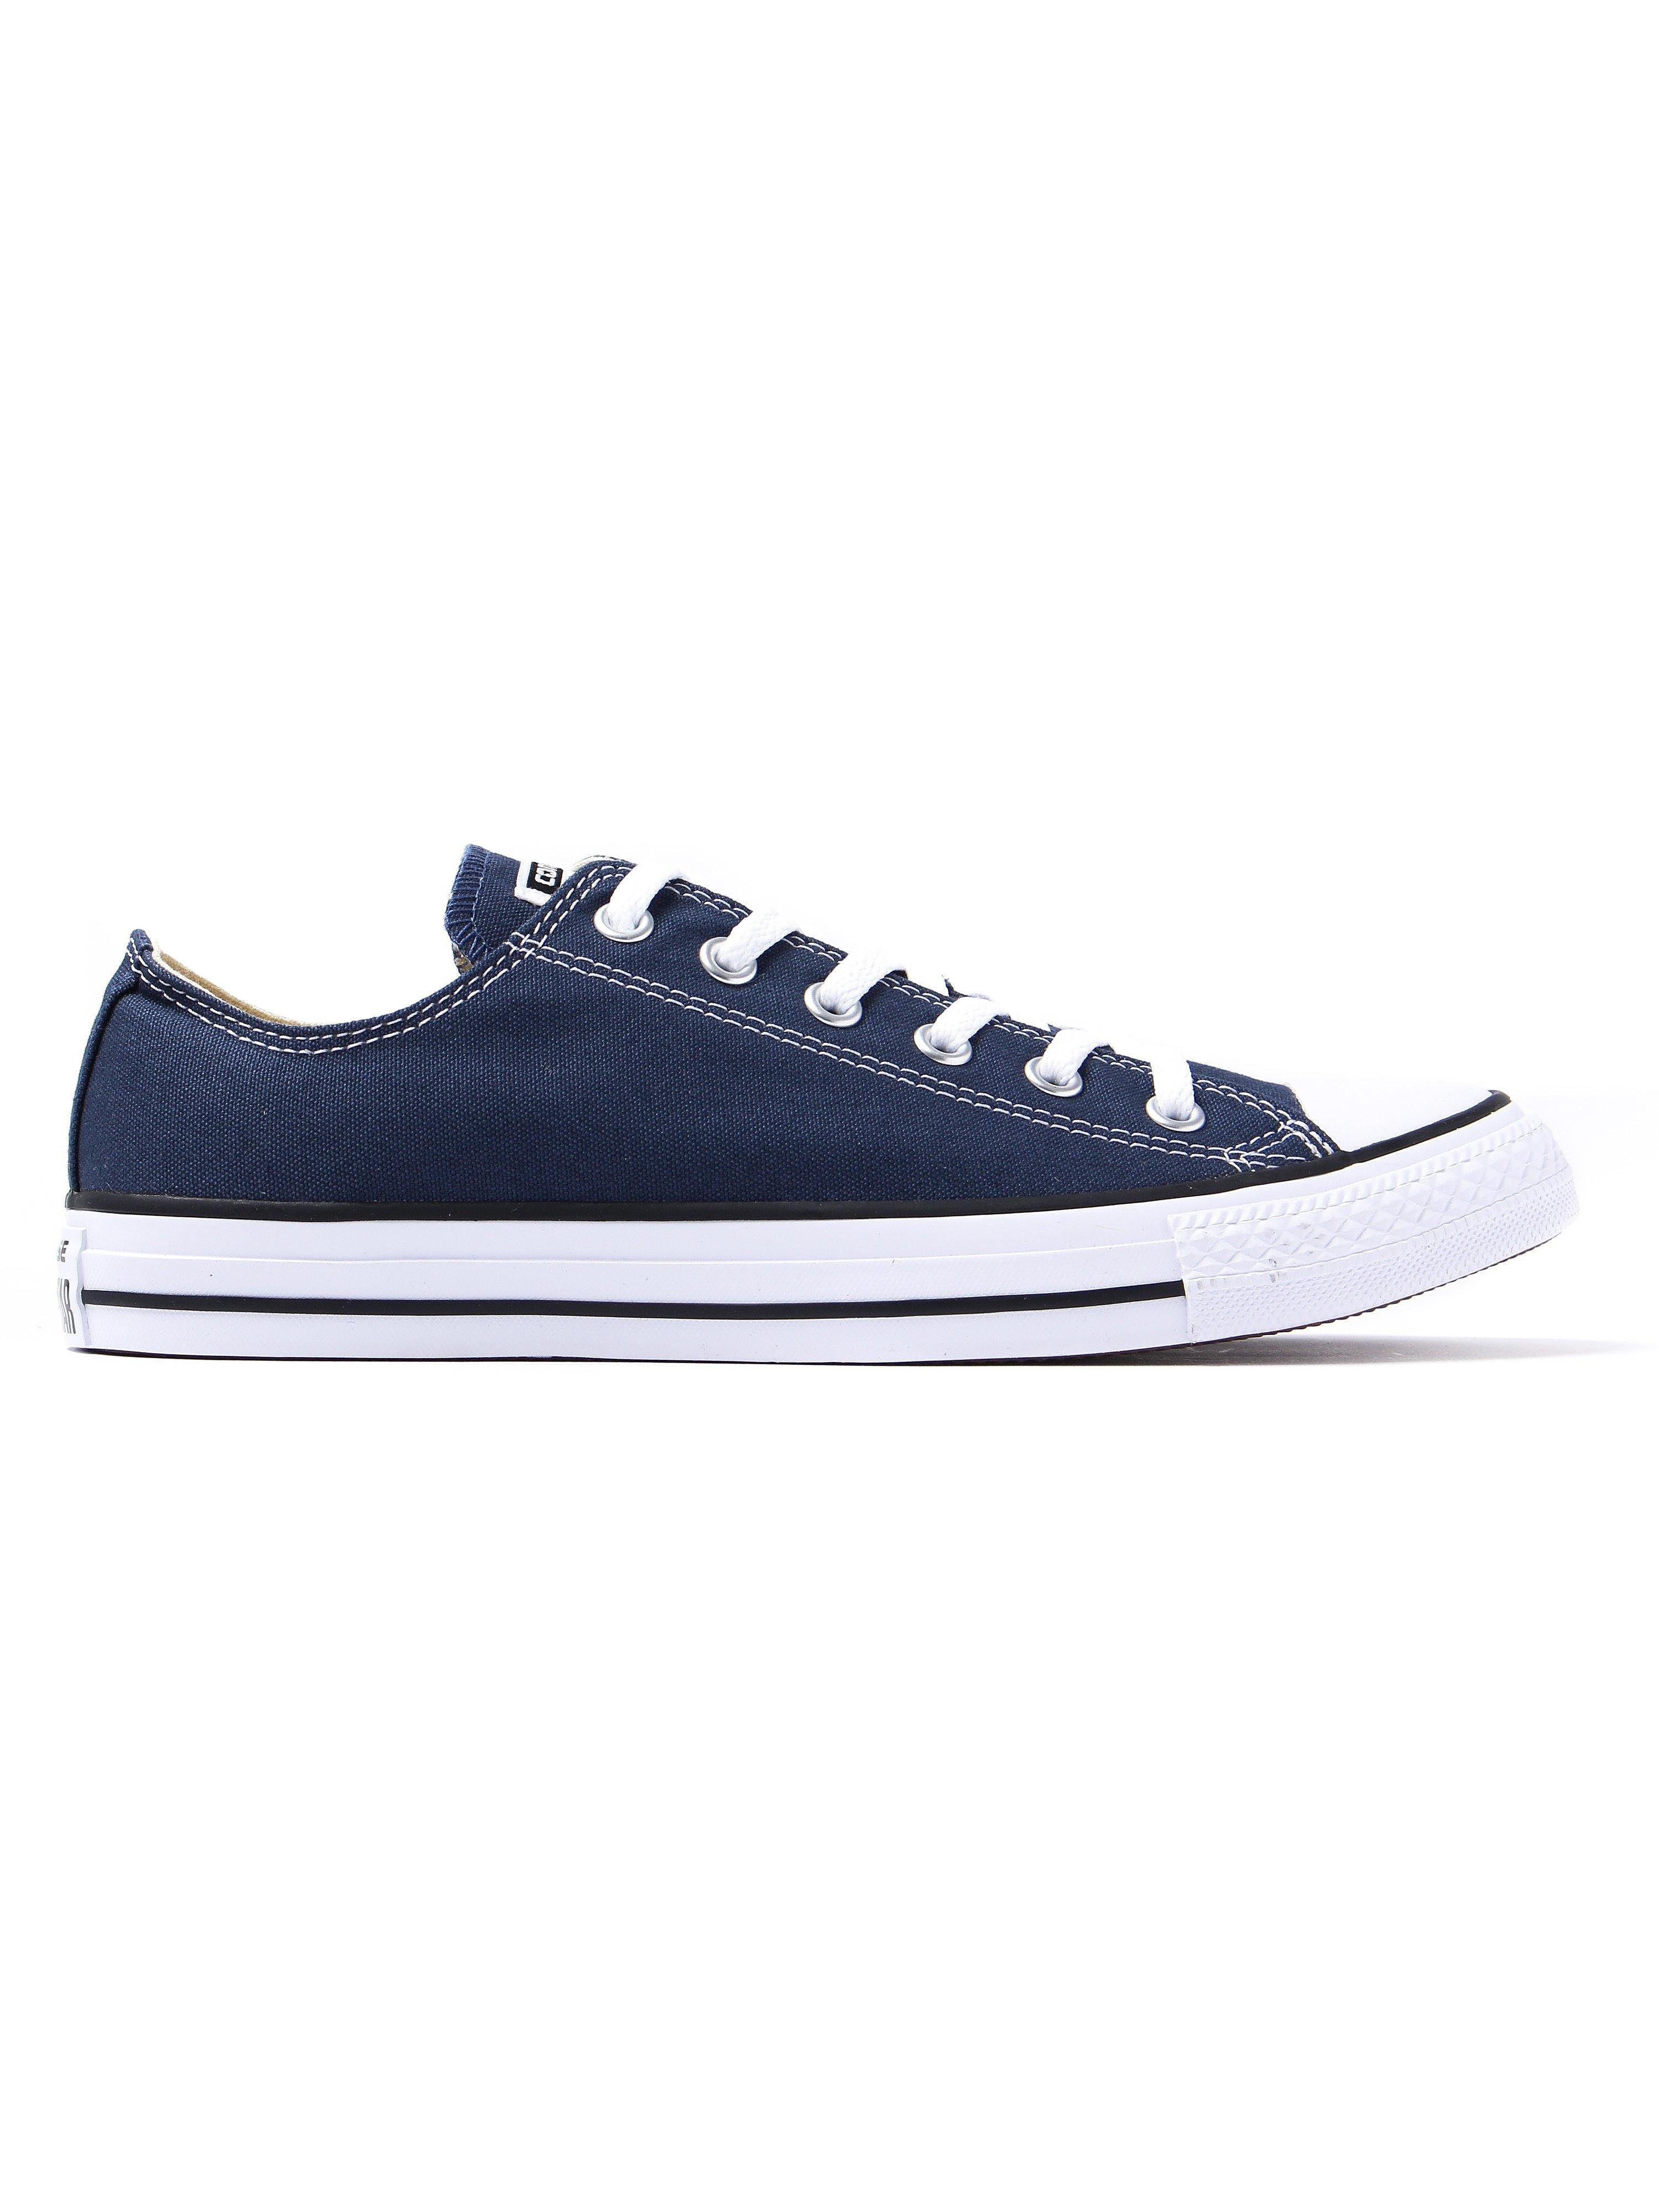 Converse Men's Chuck Taylor All Star OX Trainers - Navy